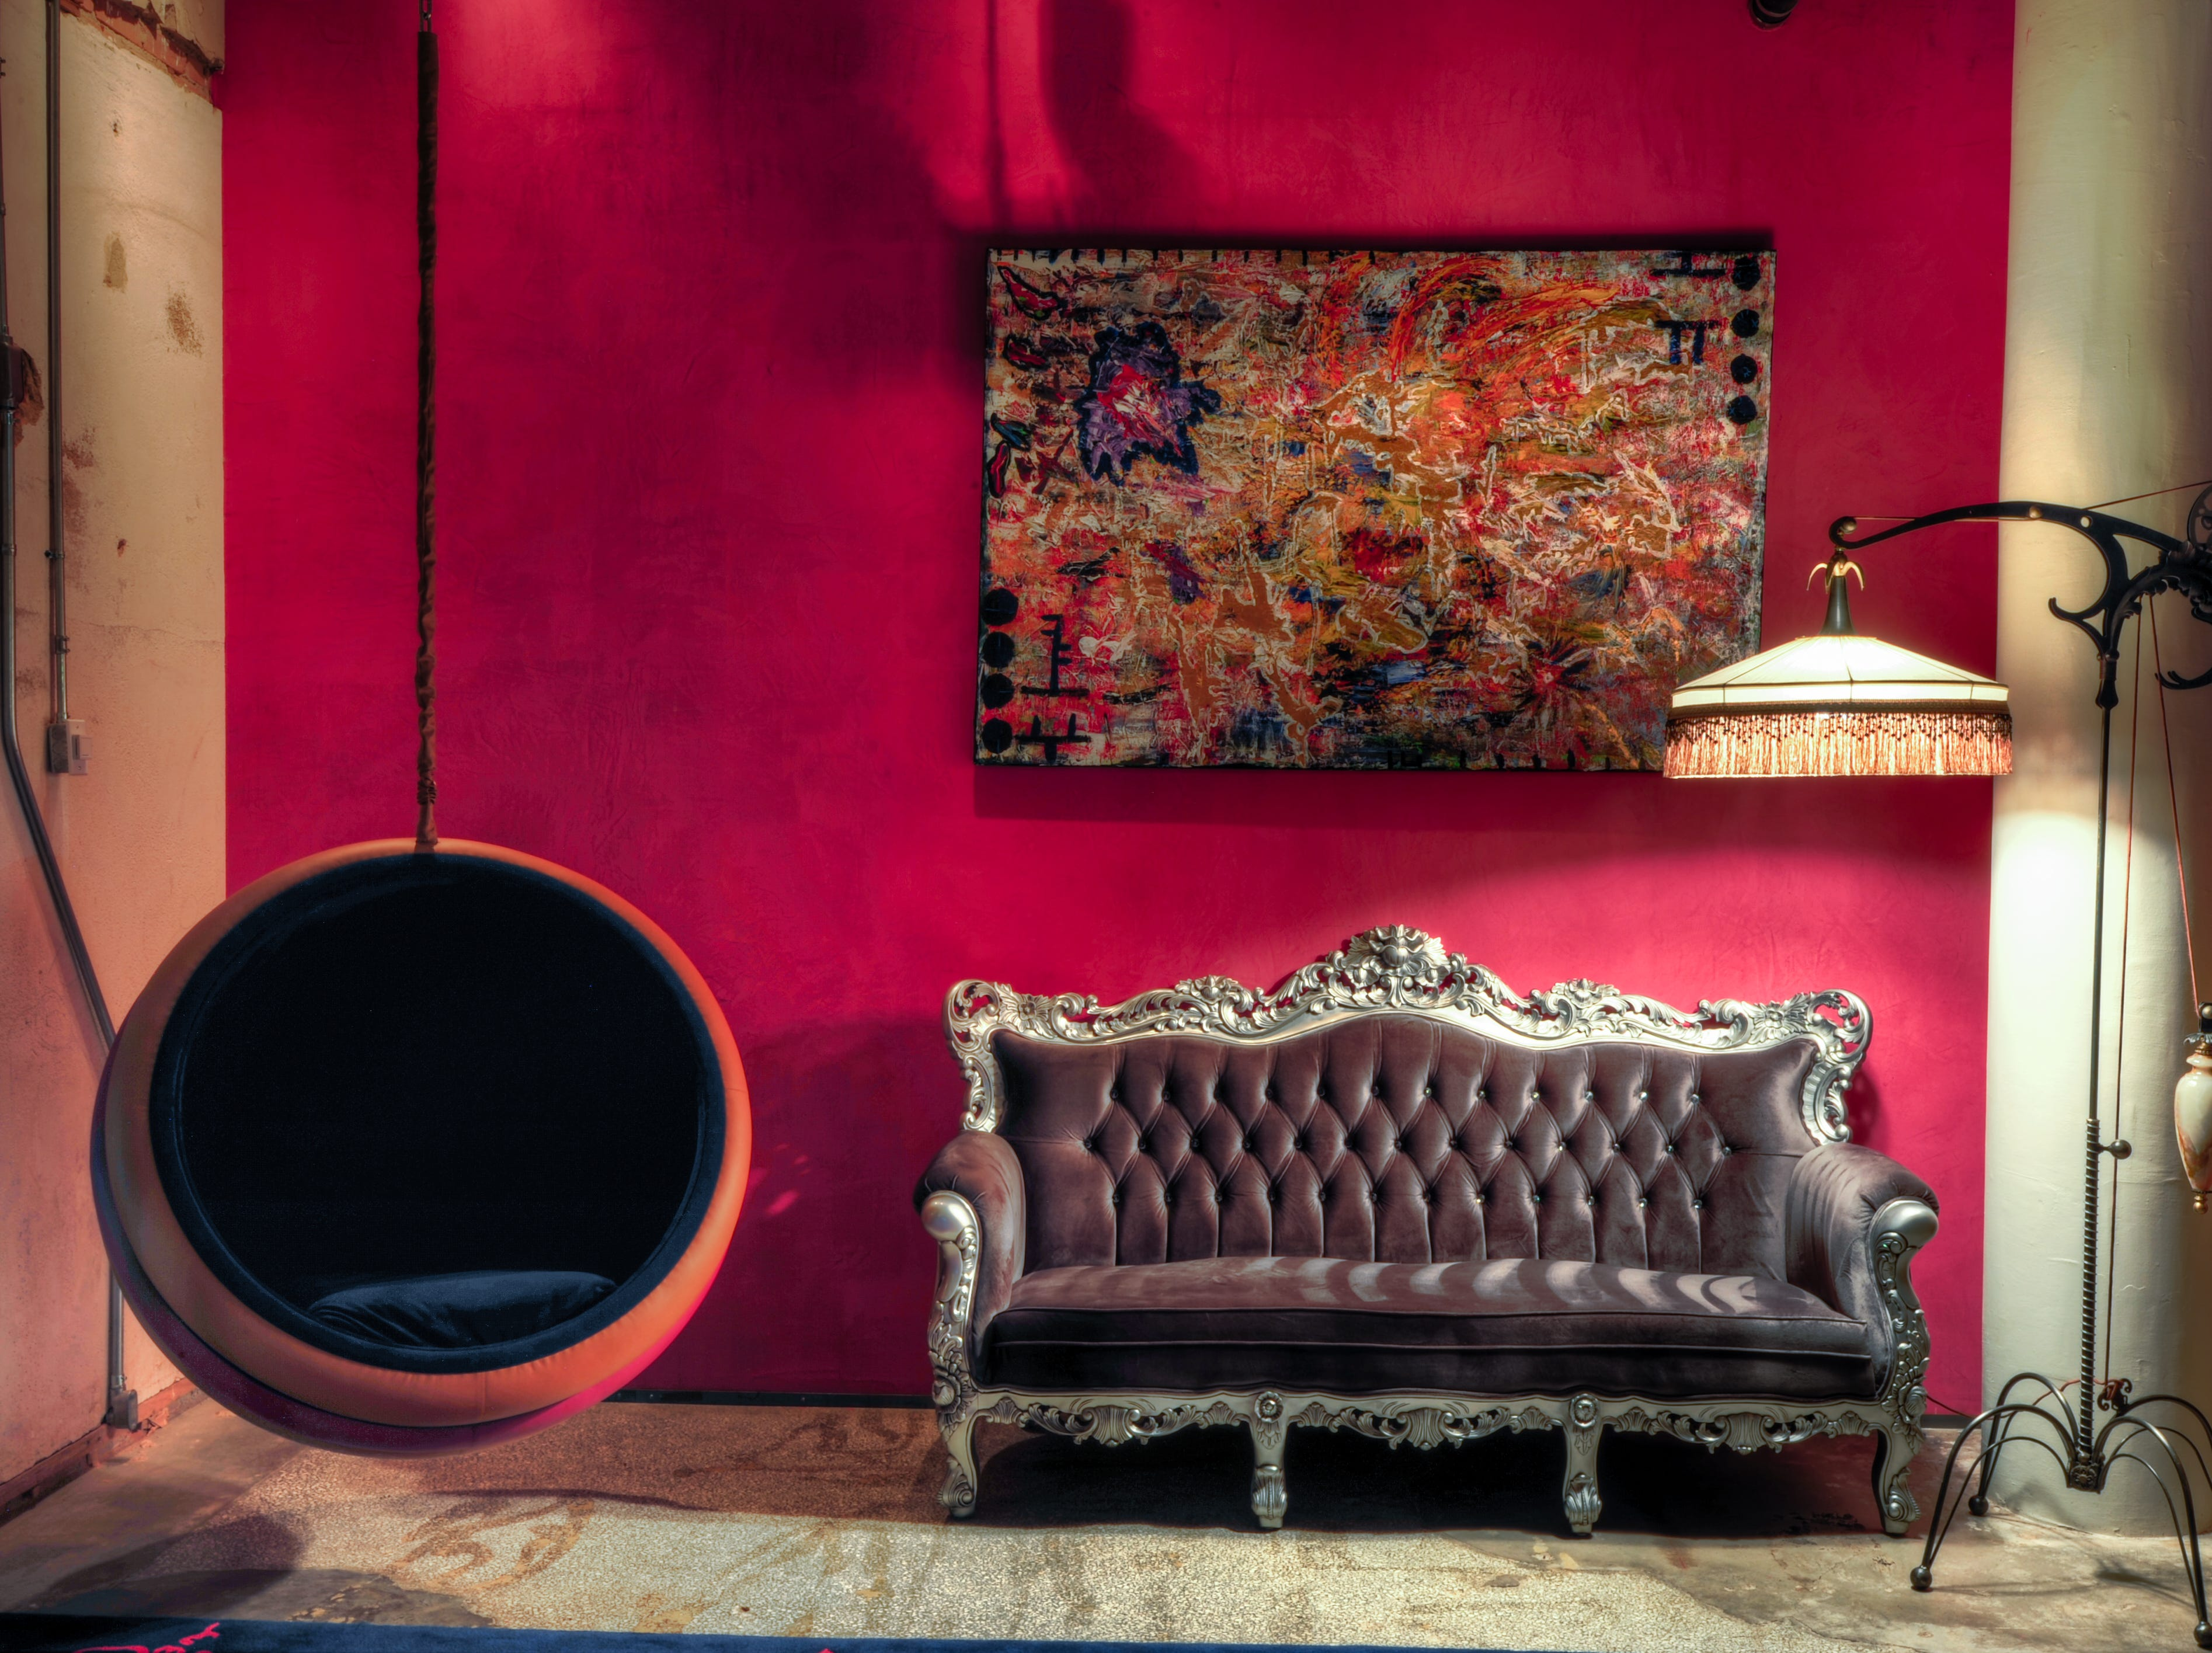 The new CANVAS Hotel Dallas has accessories in the lobby to appeal to an art and literary crowd.